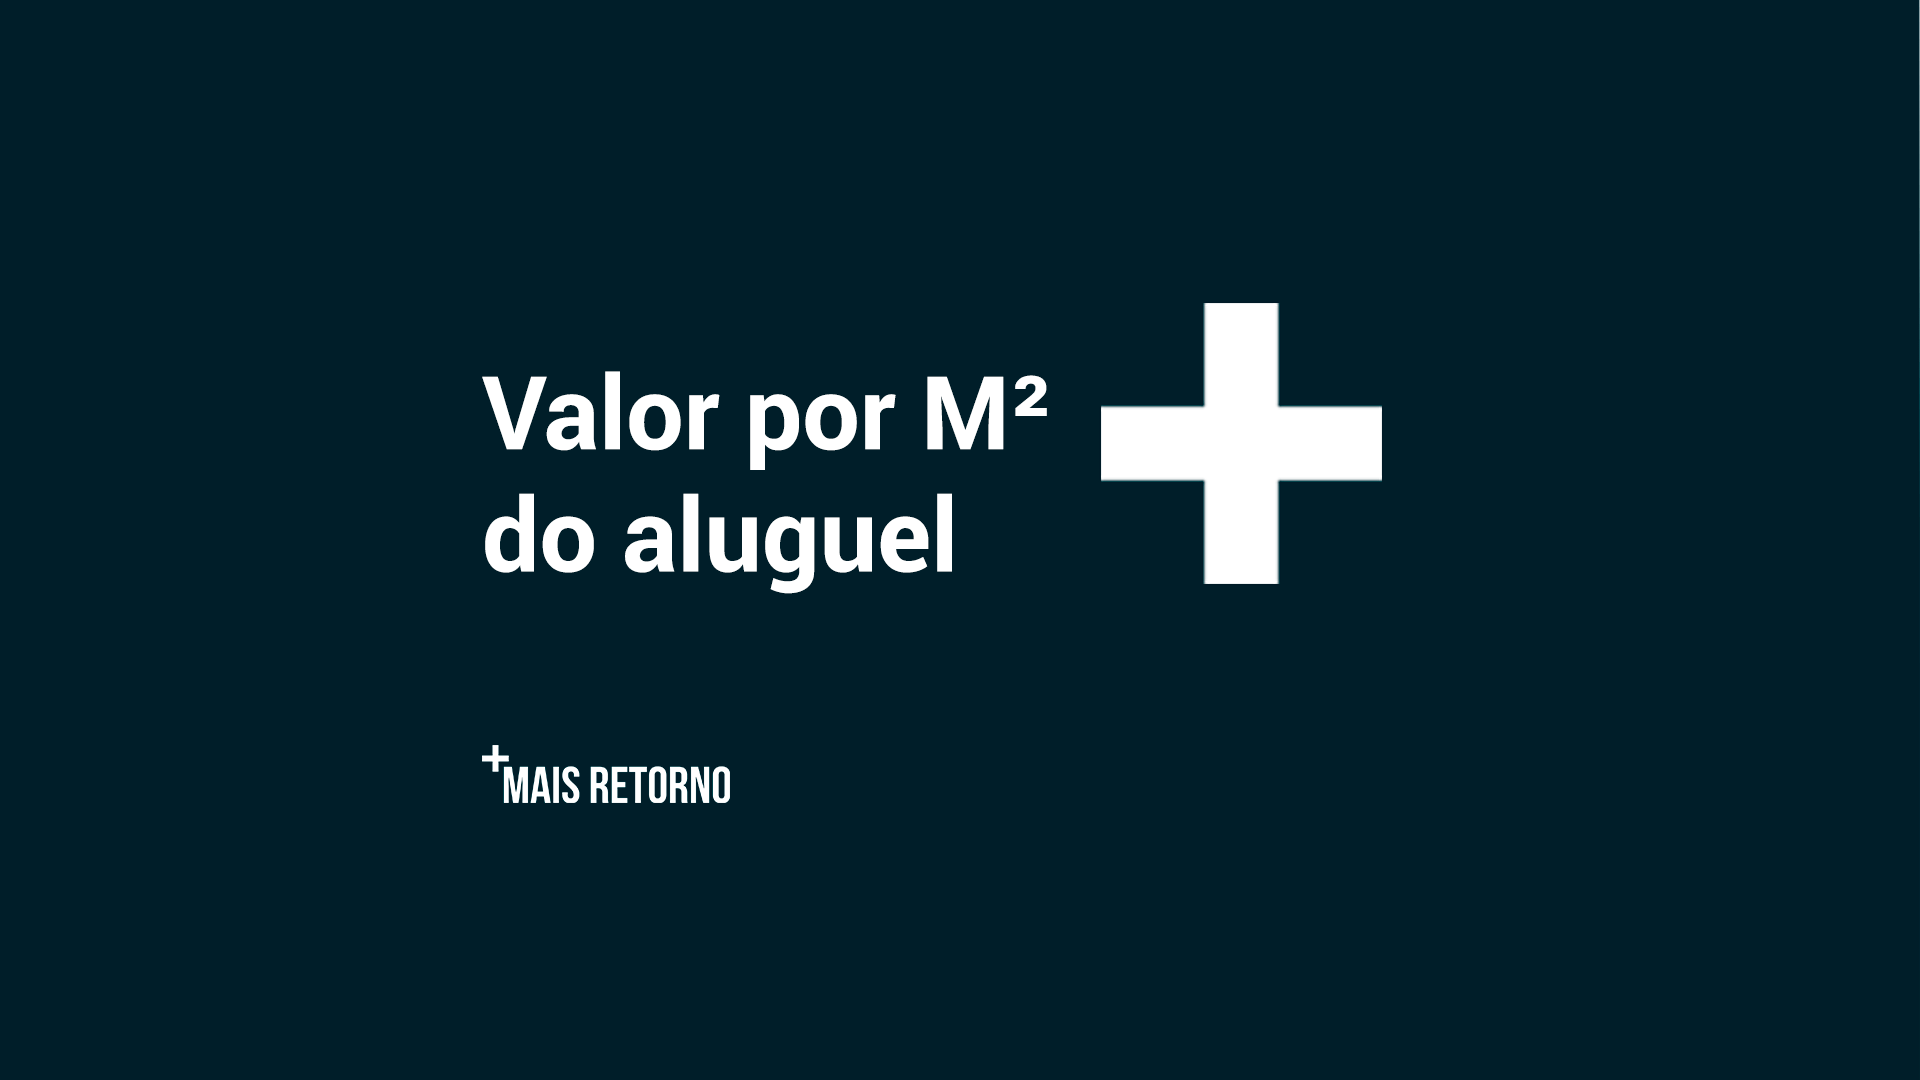 Valor por M² do aluguel